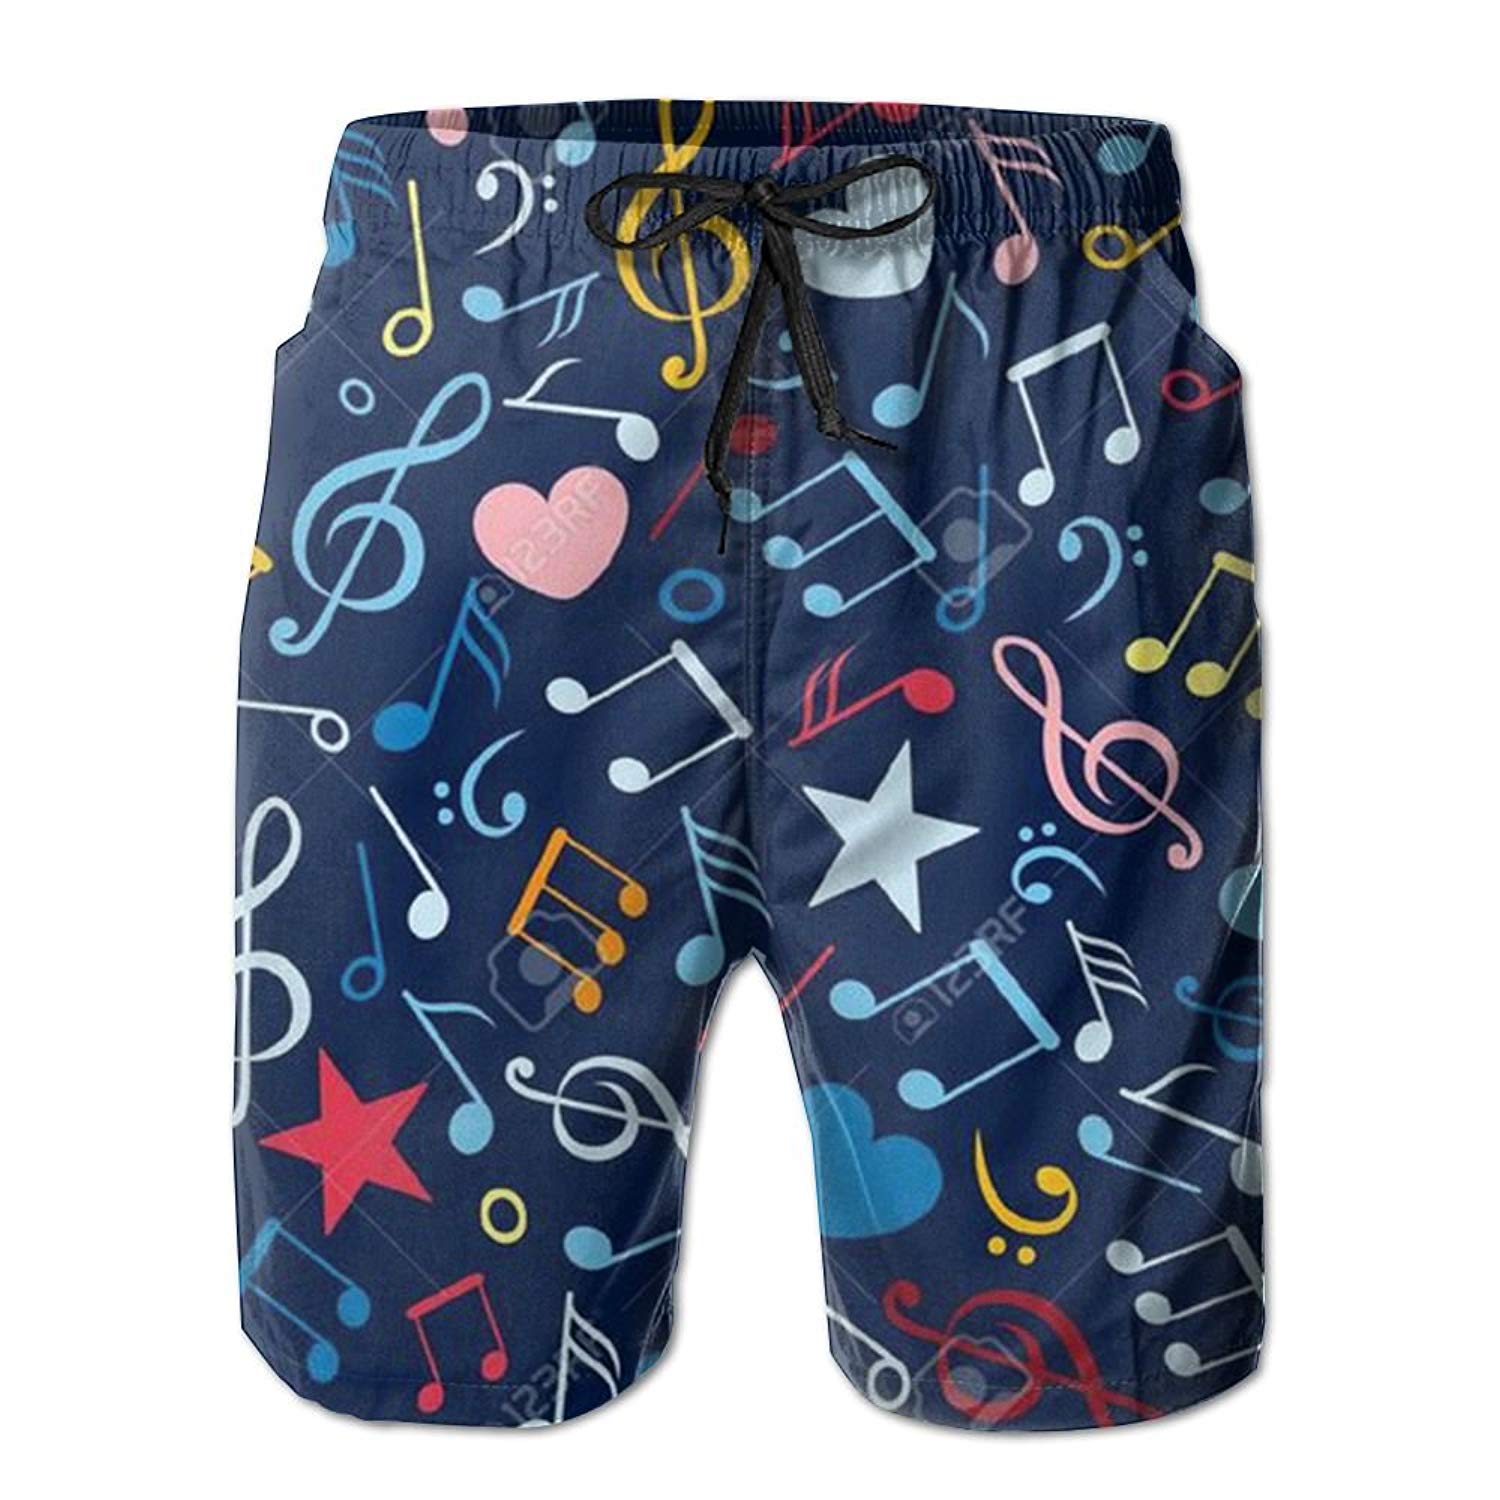 ICE CROSS Older Boys Swimsuit Beach Shorts YouthQuick Dry Board Shorts with Mesh Lining